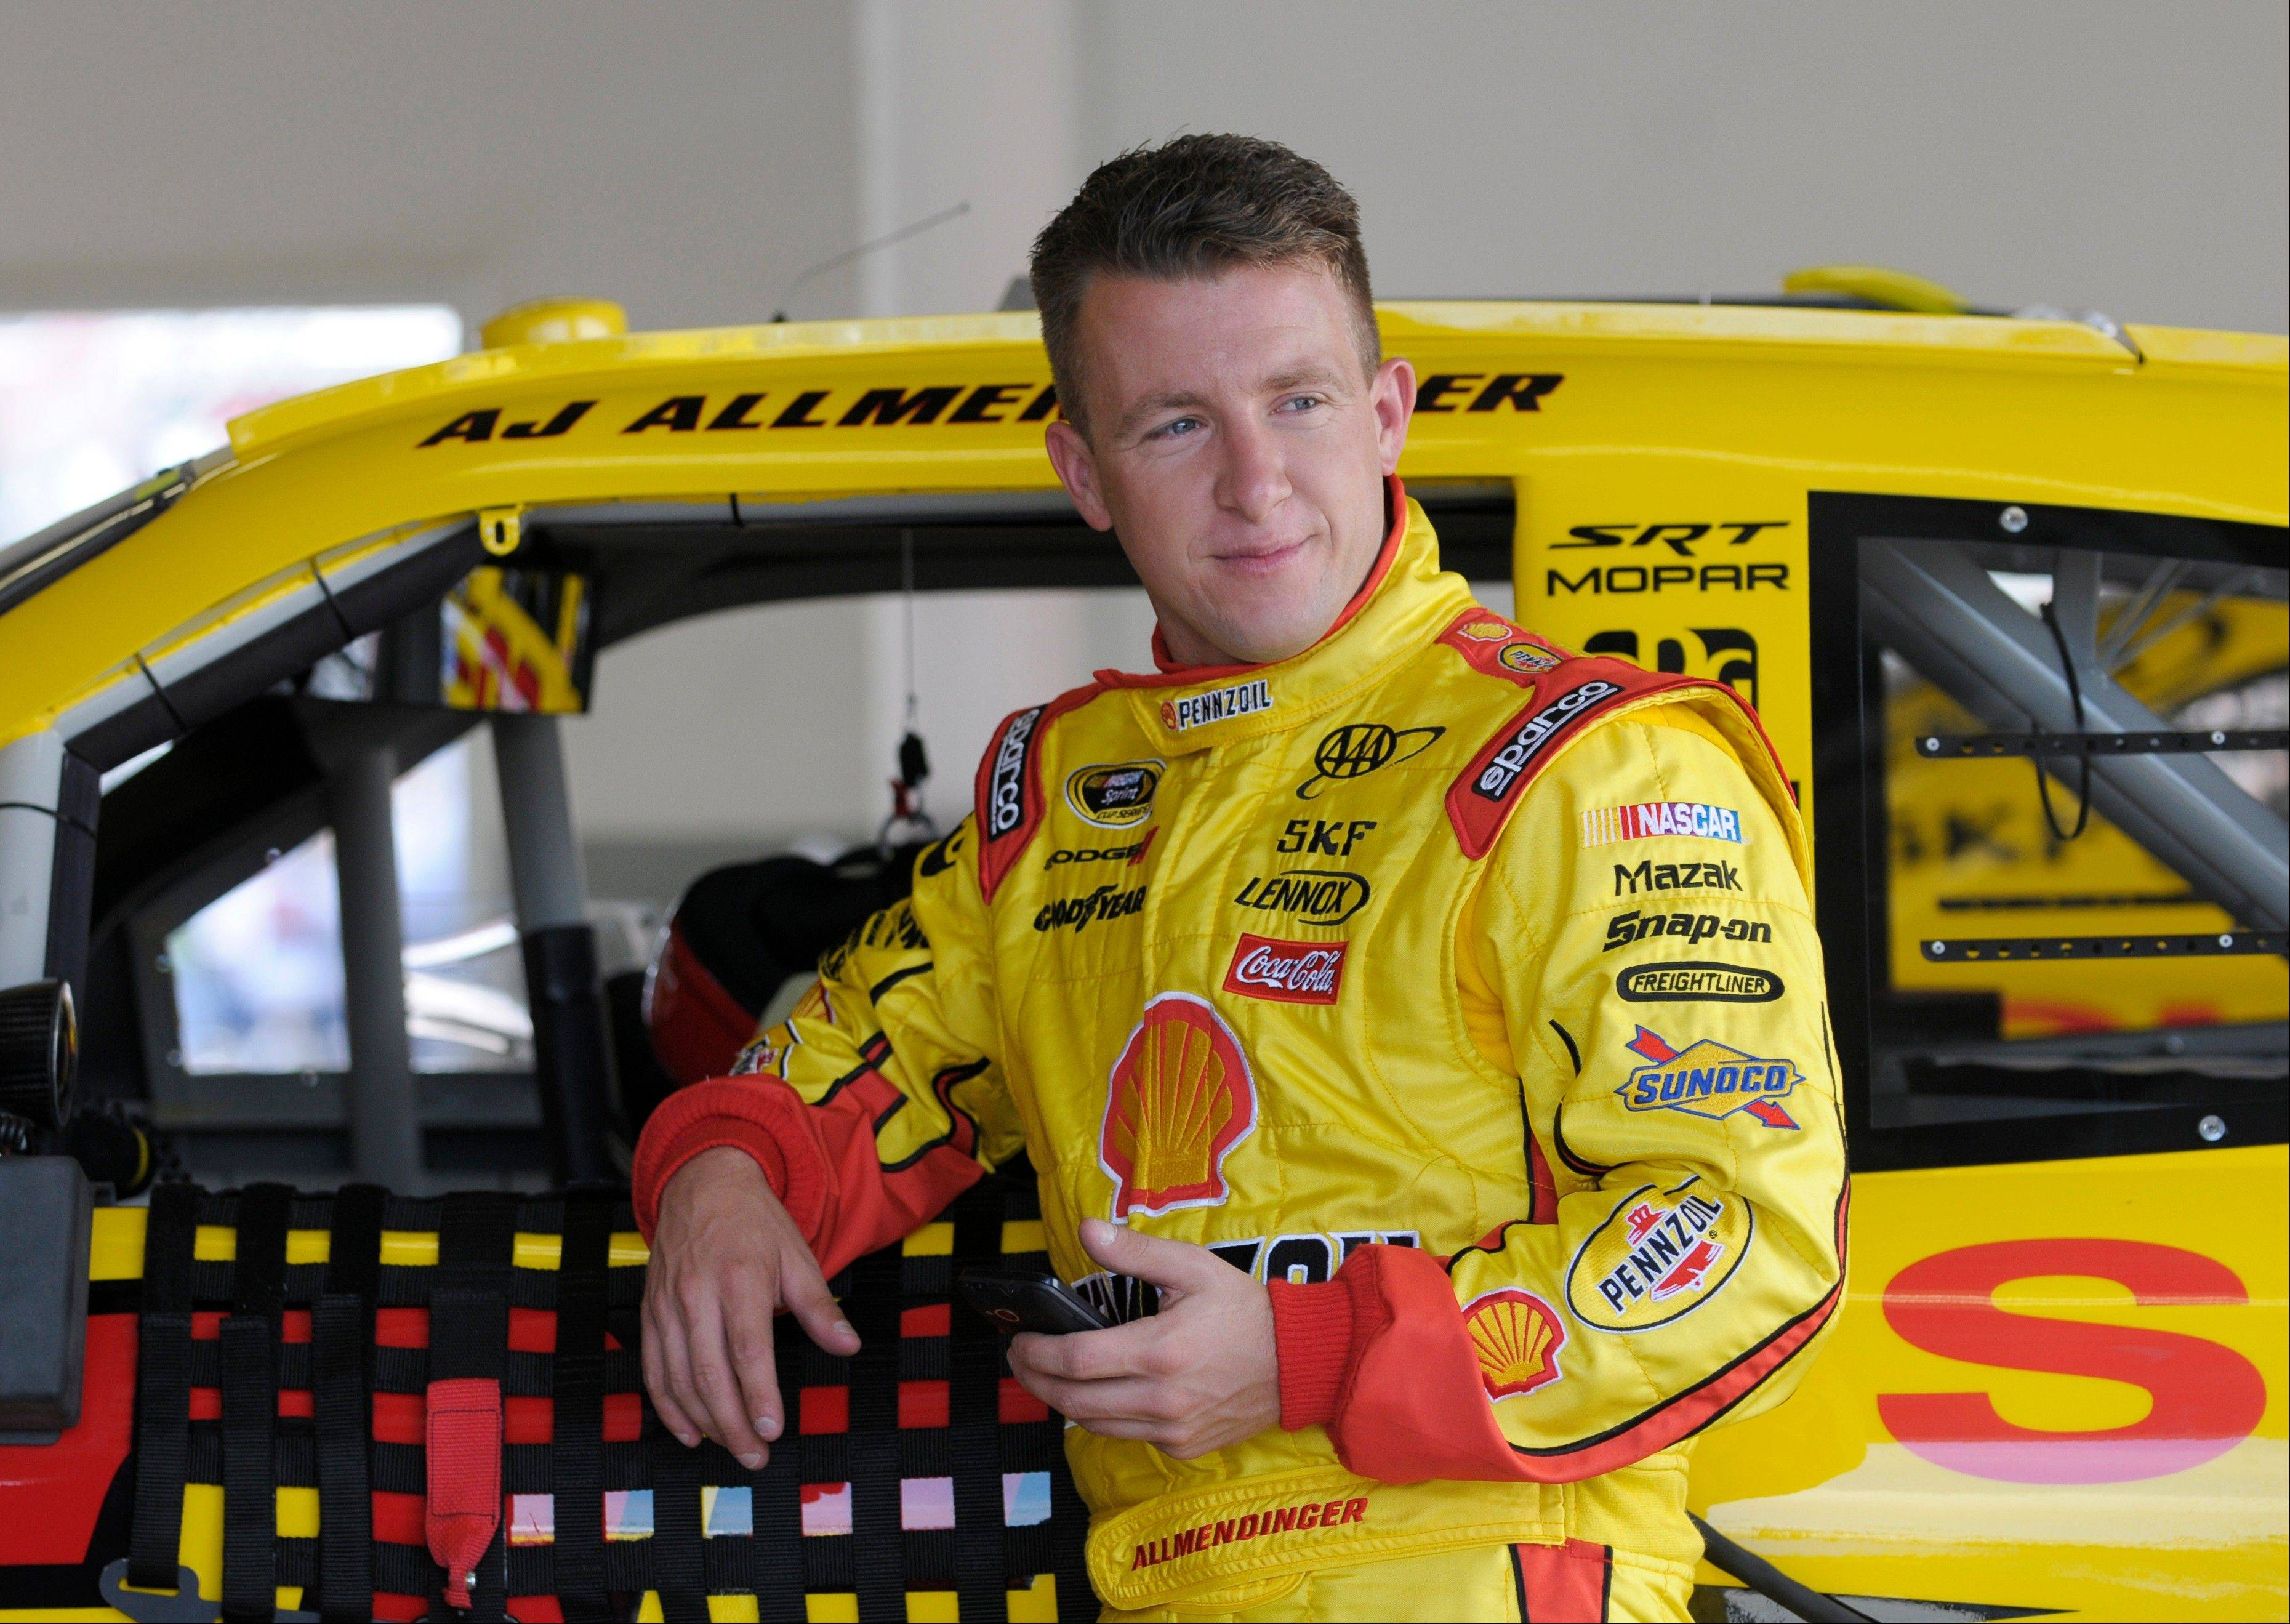 NASCAR has temporarily suspended AJ Allmendinger after he failed a drug test. Allmendinger won't be allowed to drive tonight in the Sprint Cup race at Daytona. Instead, Sam Hornish Jr. will be behind the wheel of the No. 22 Dodge for Penske Racing. Allmendinger has 72 hours to request that his B sample be tested.